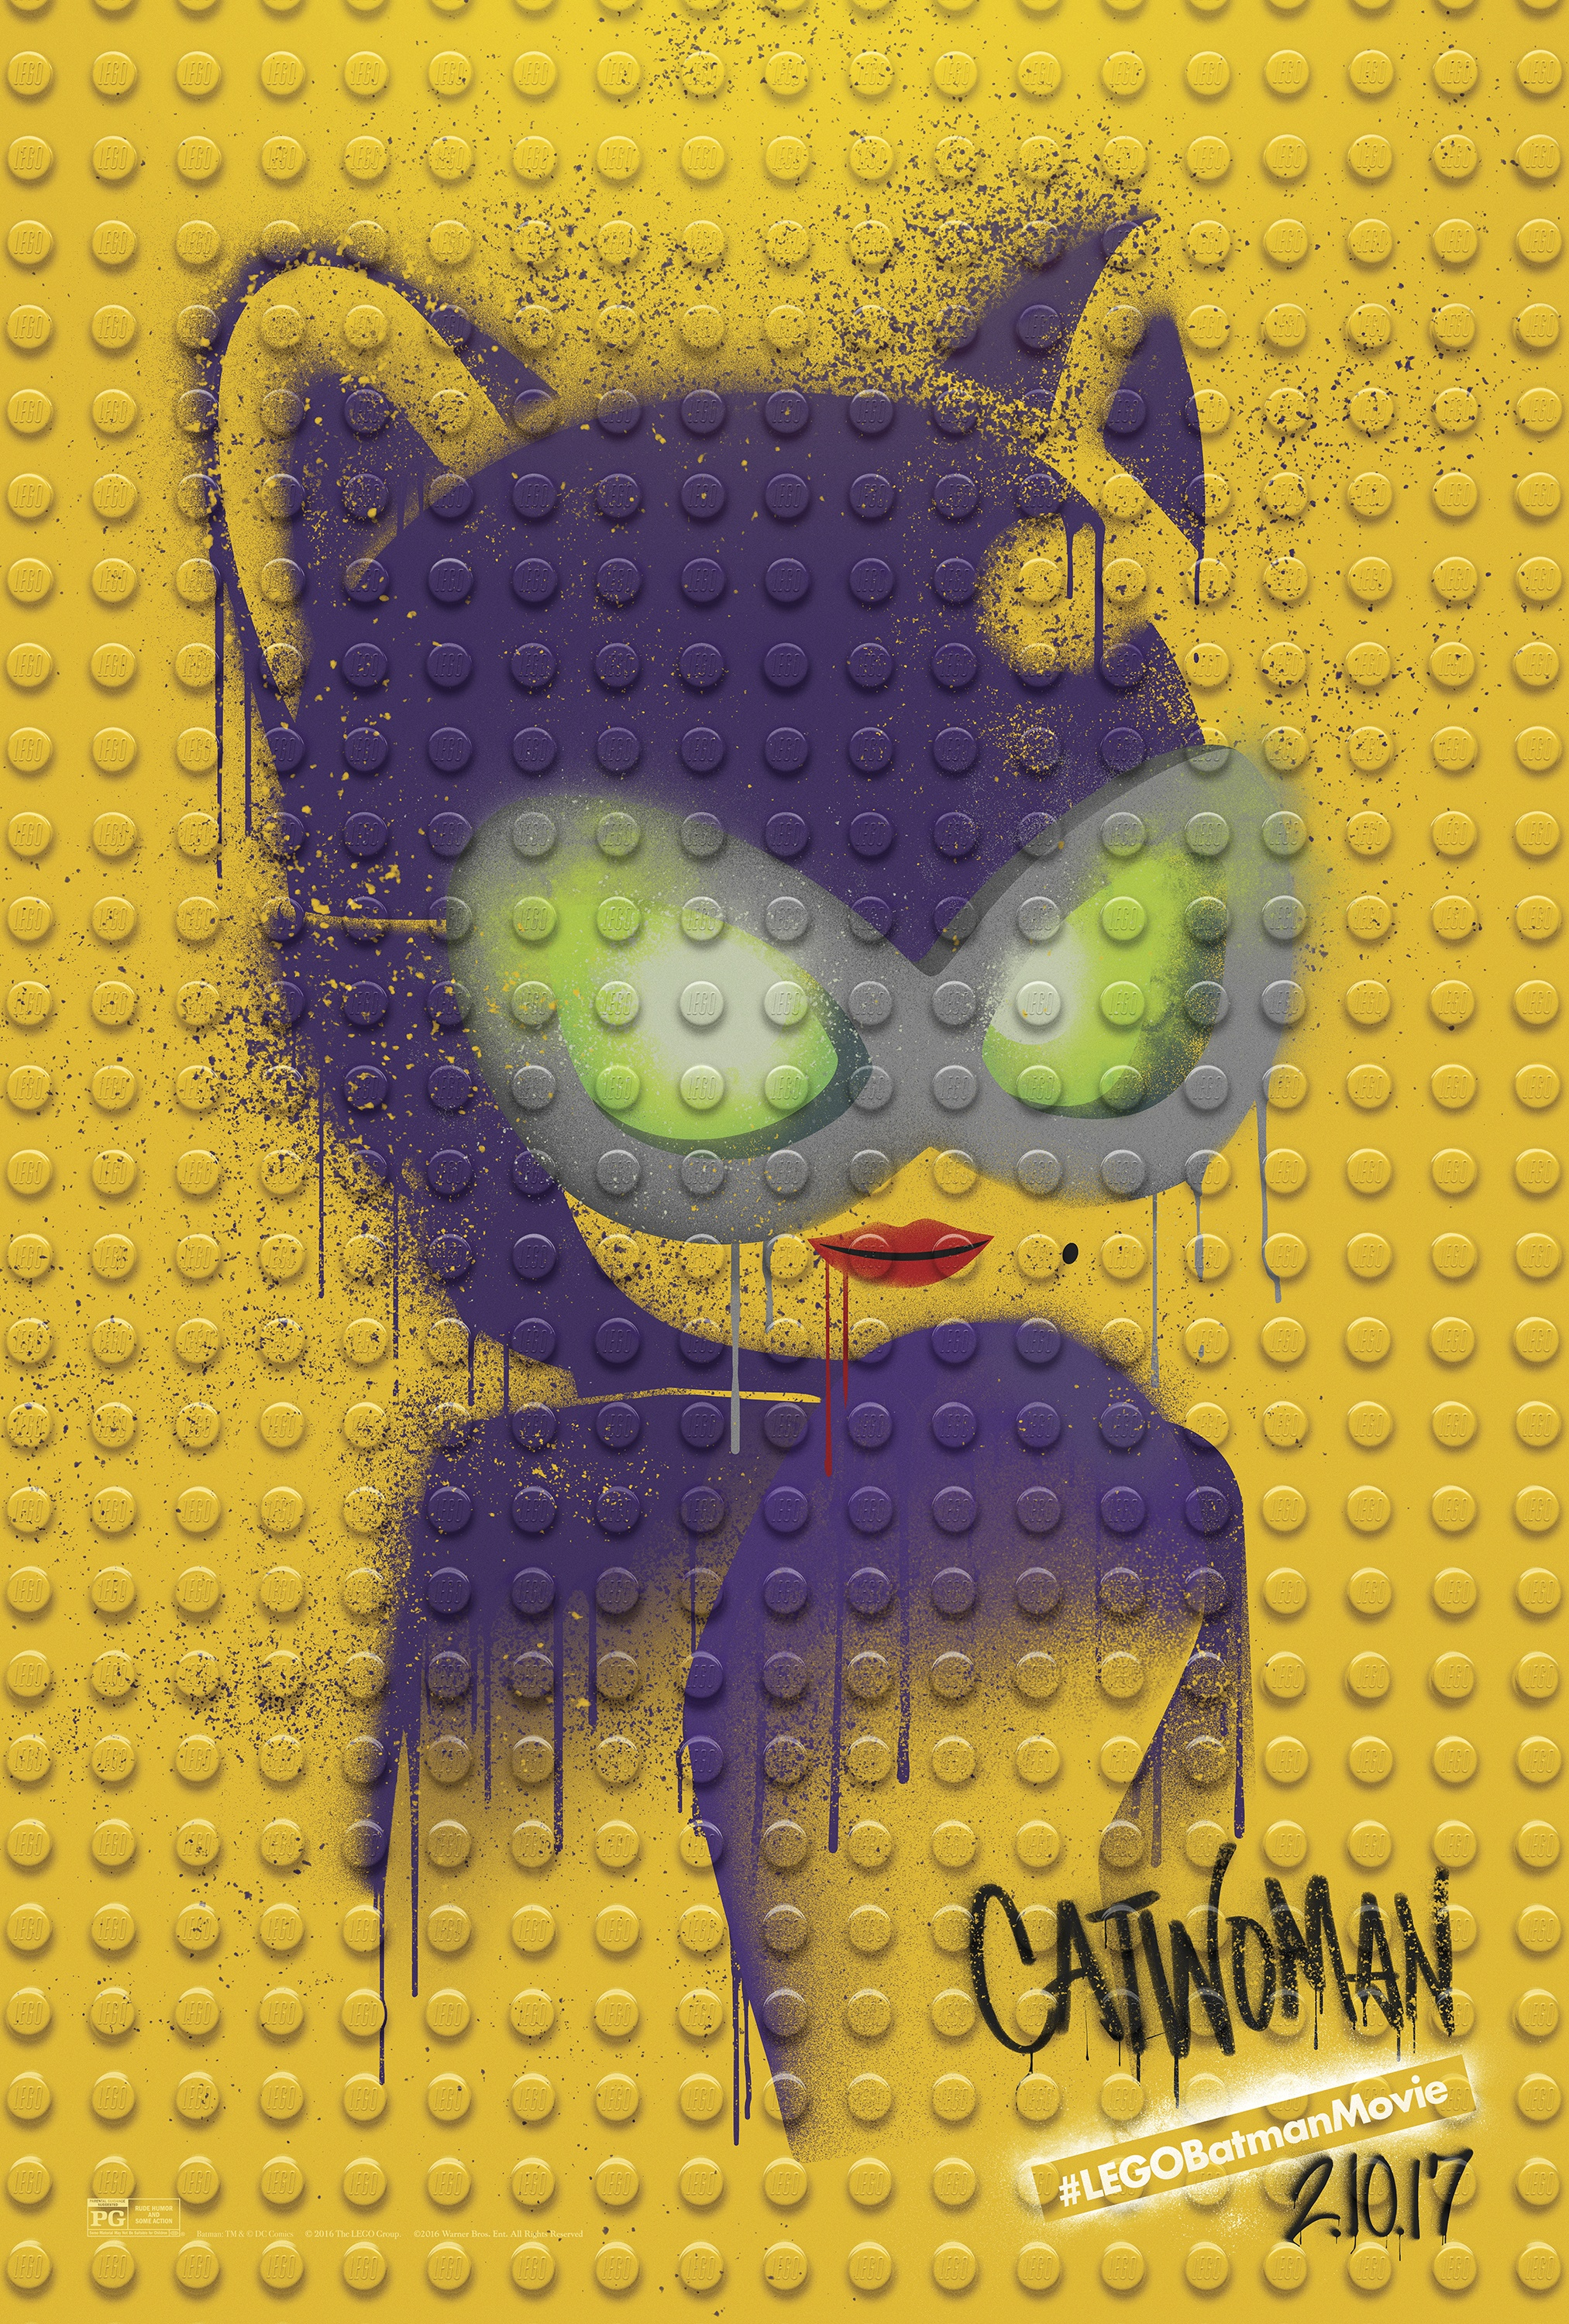 Thumbnail for The LEGO Batman Movie - Graffiti Wild Postings | Catwoman